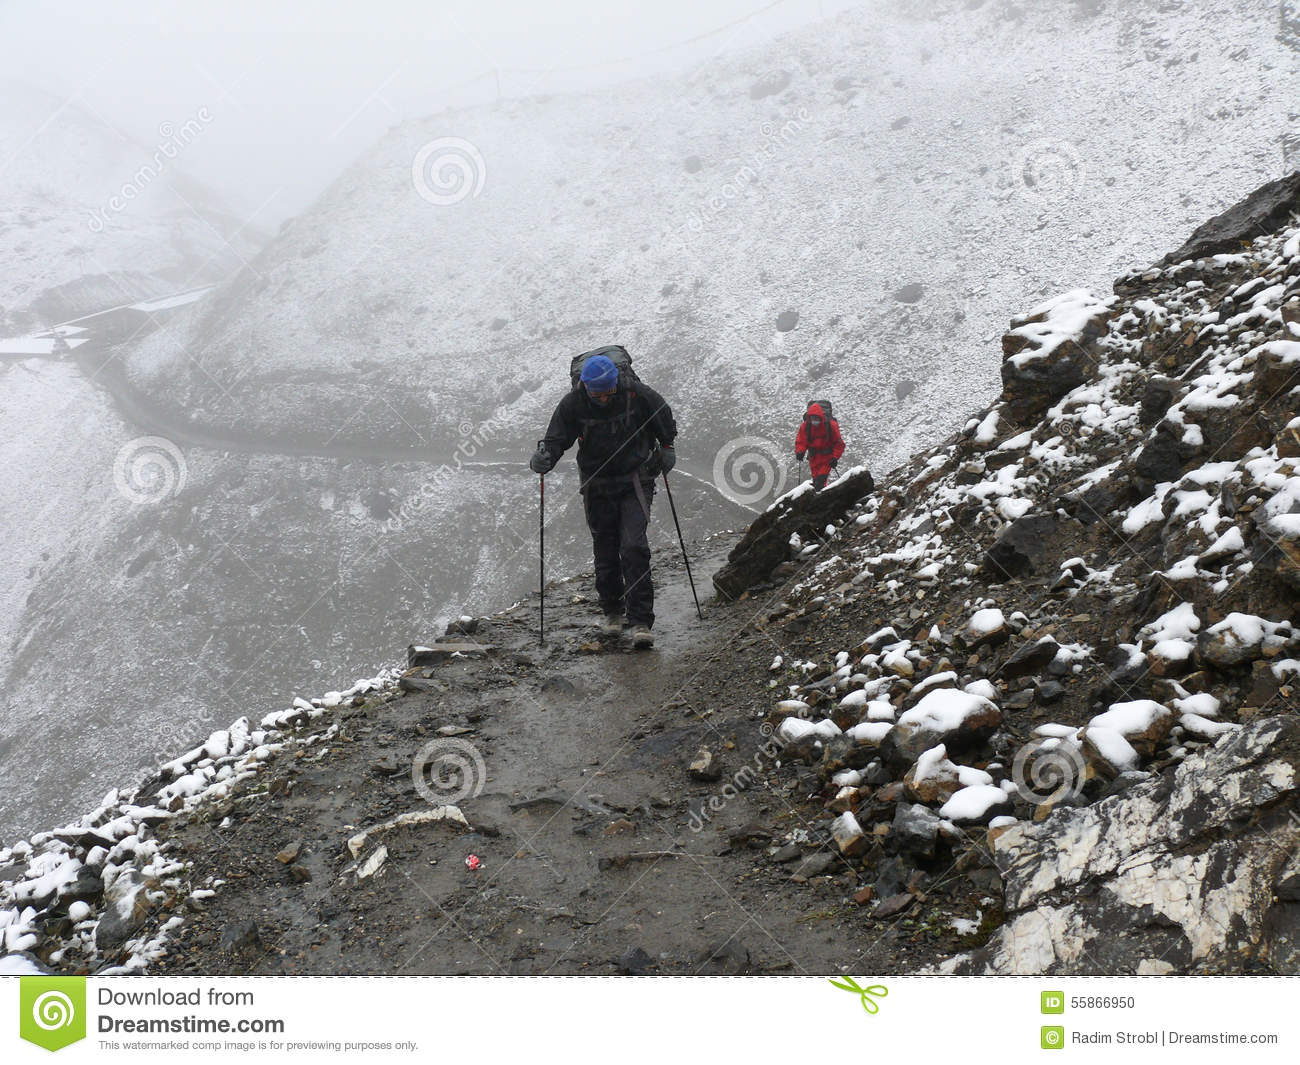 Cold Snowy Weather On Way To Thorong La Pass, Nepal Stock Photo.